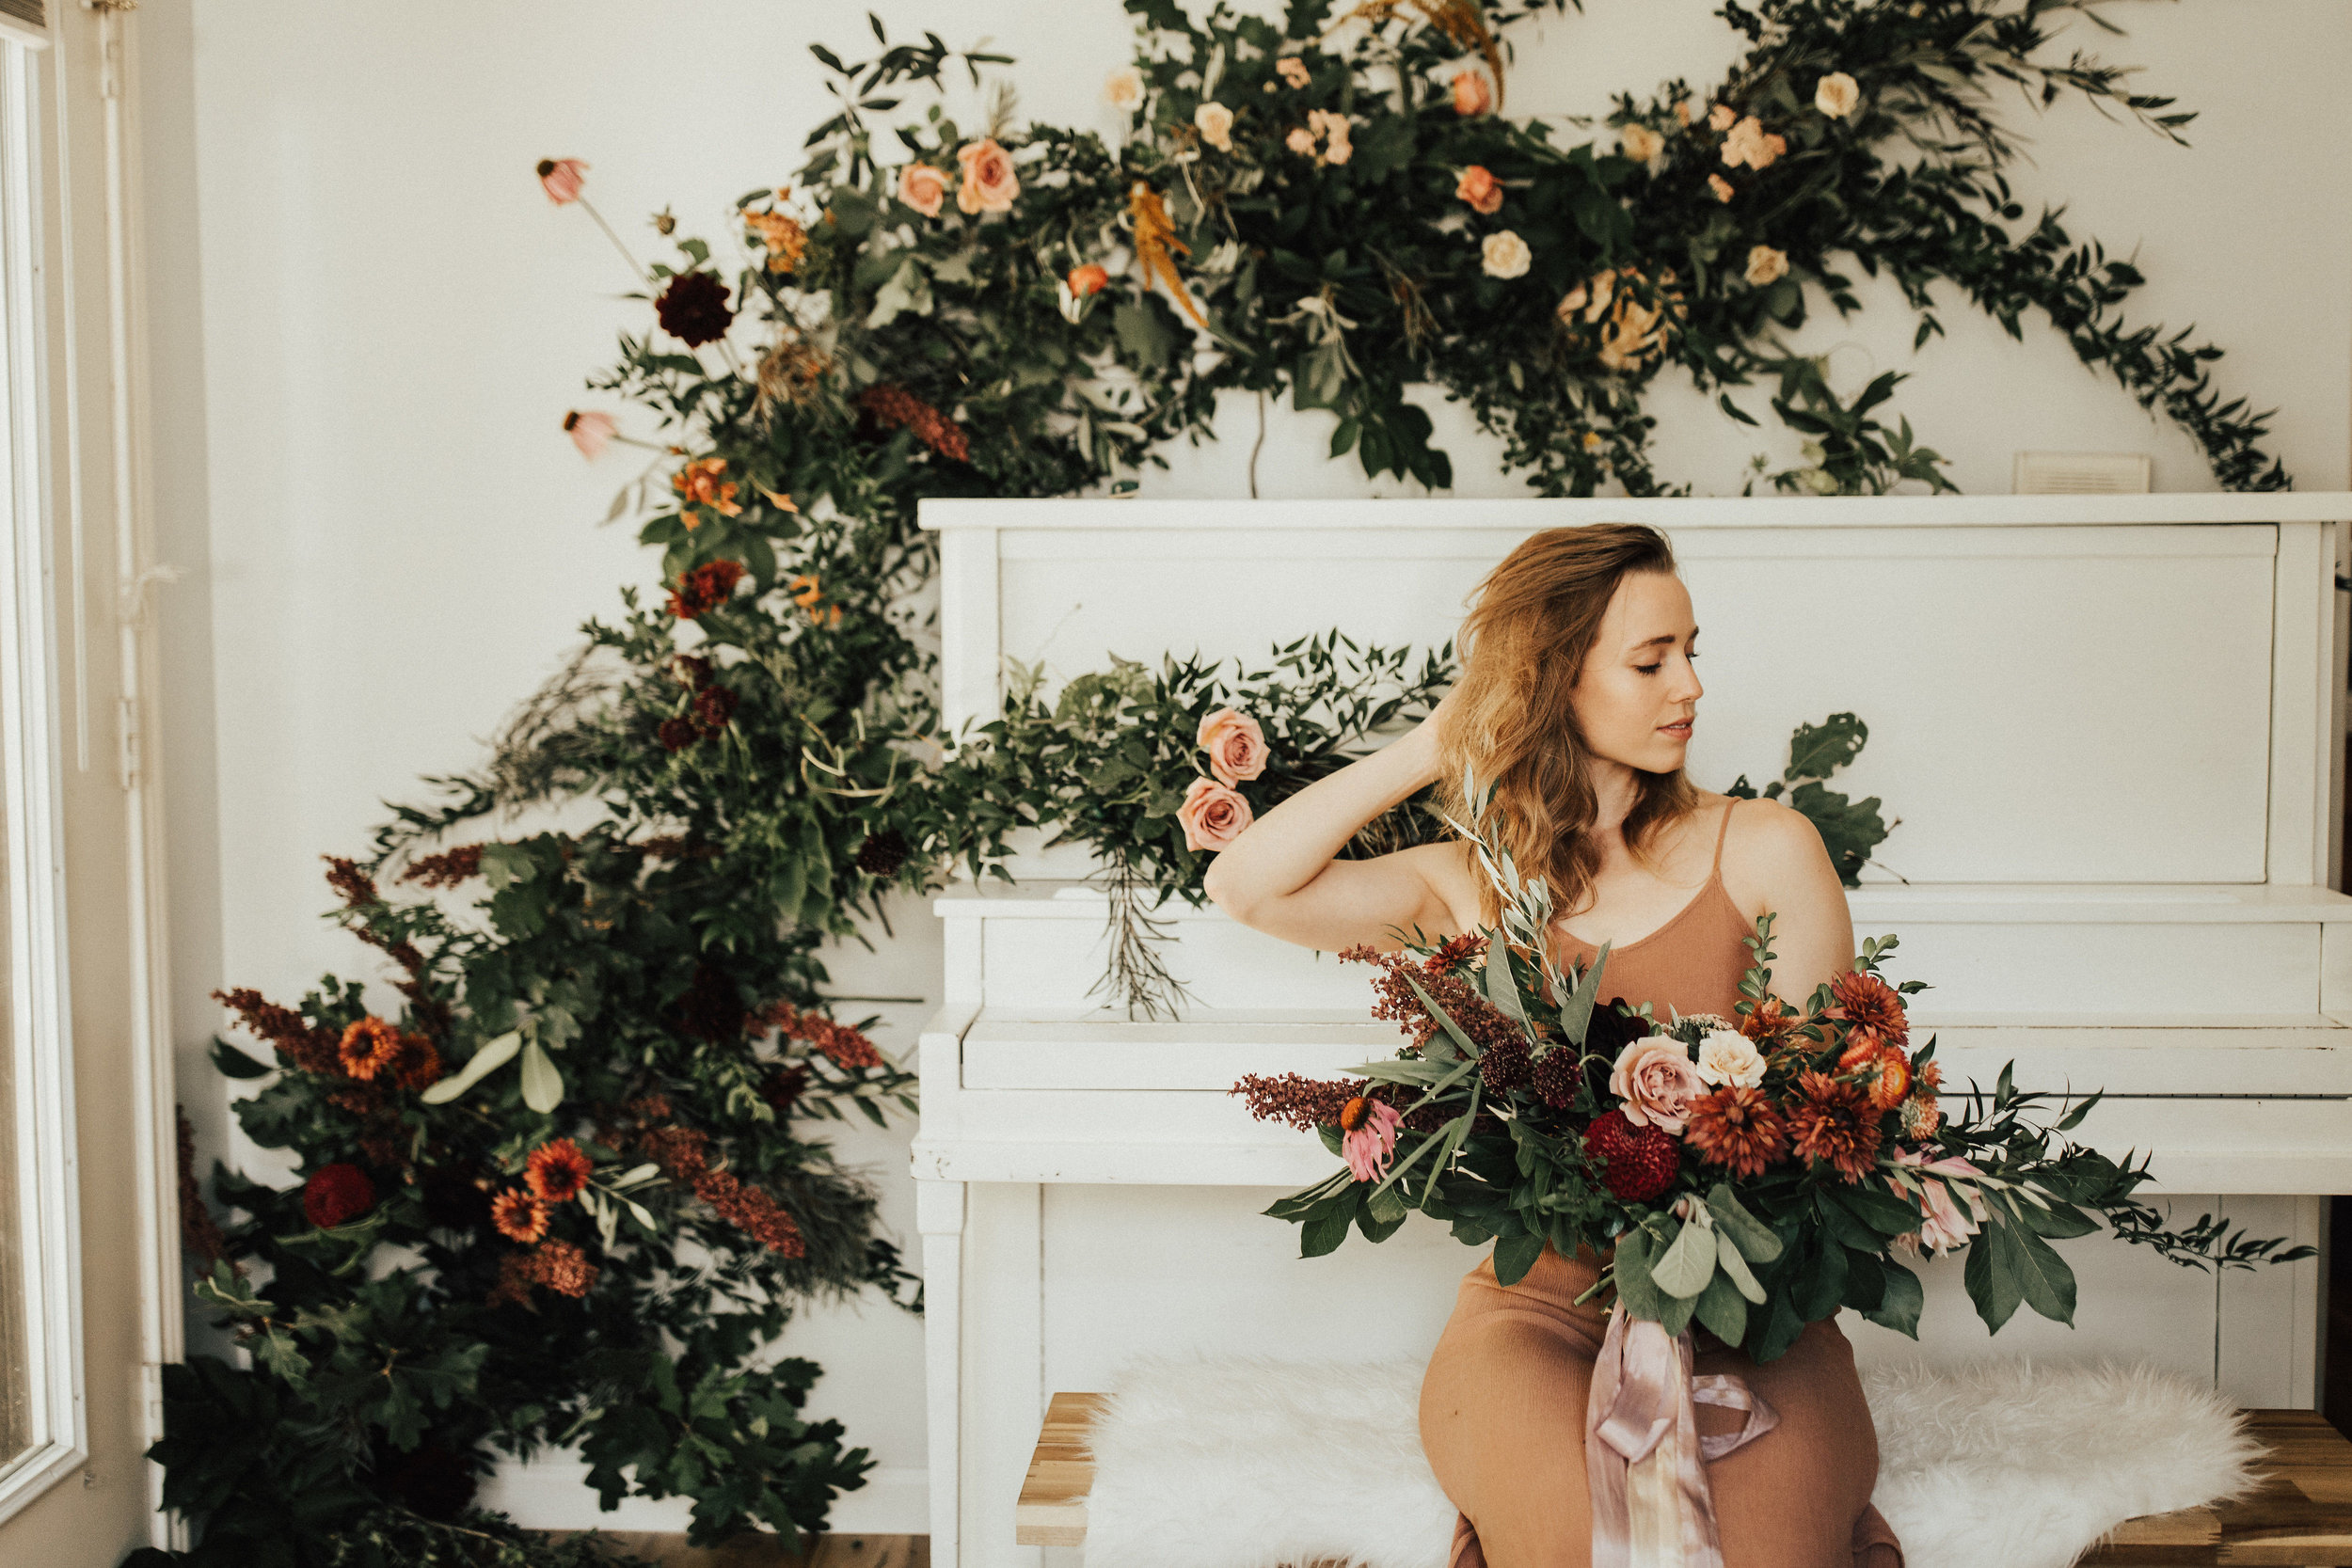 surrounded by flowers